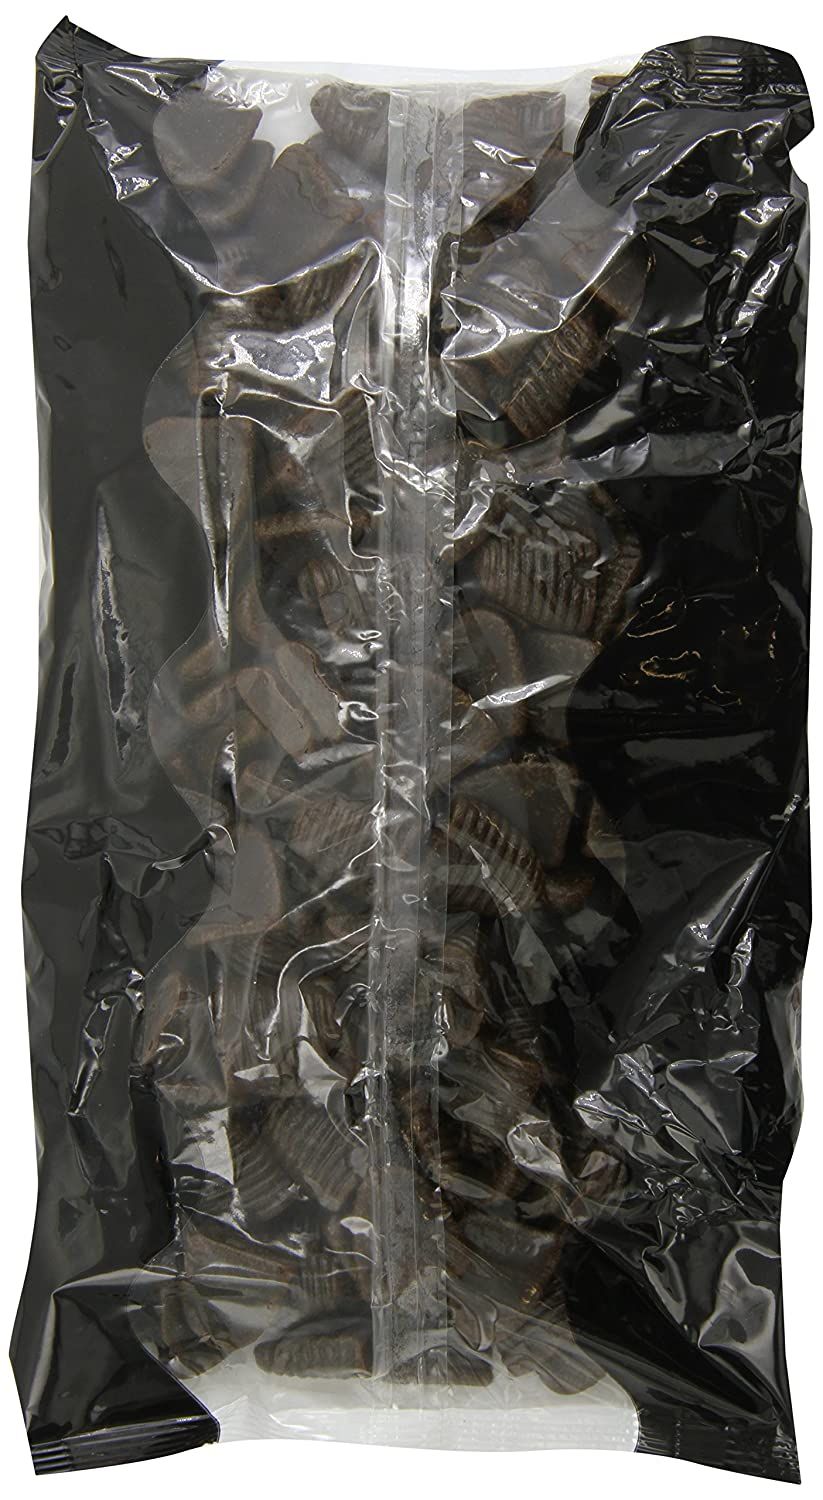 Kraepelien Holm Bee Hive SALENEW very popular! Honey Licorice Pack Max 48% OFF Bags 2.2-Pound